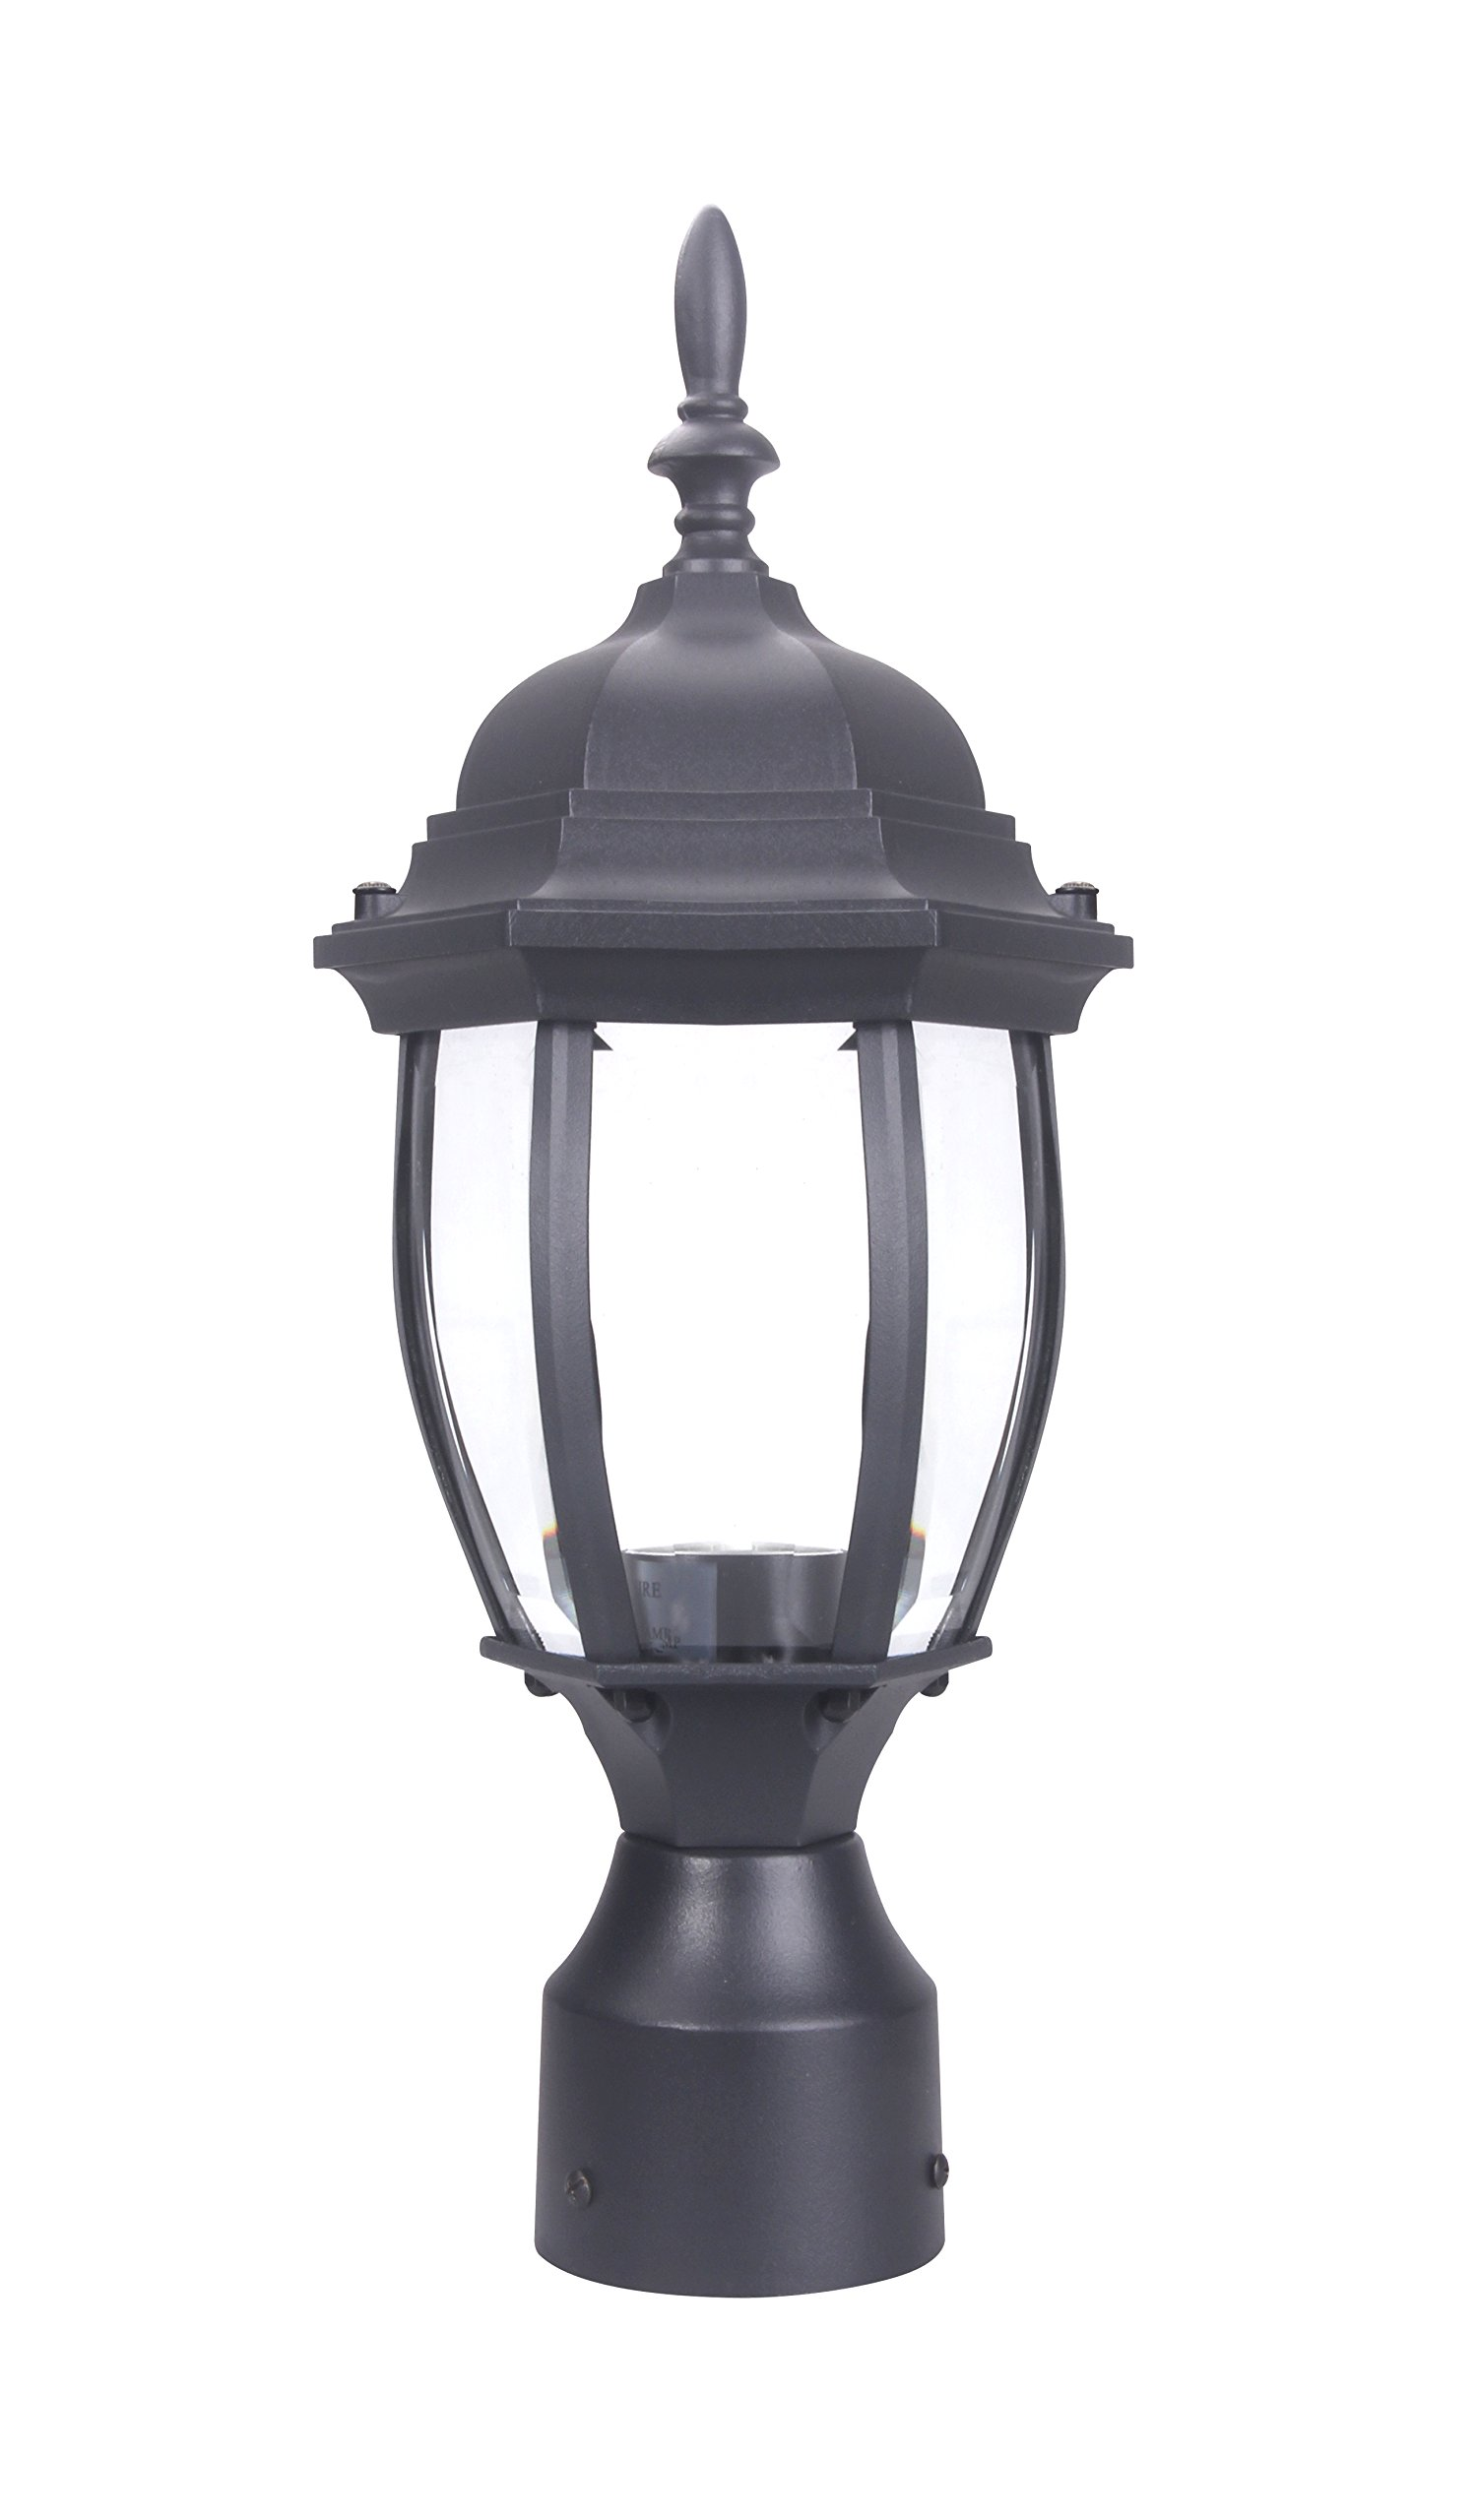 LIT-PaTH Outdoor Post Light Pole Lantern Lighting Fixture with One E26 Base Max 100W, Aluminum Housing Plus Glass, Matte Black Finish